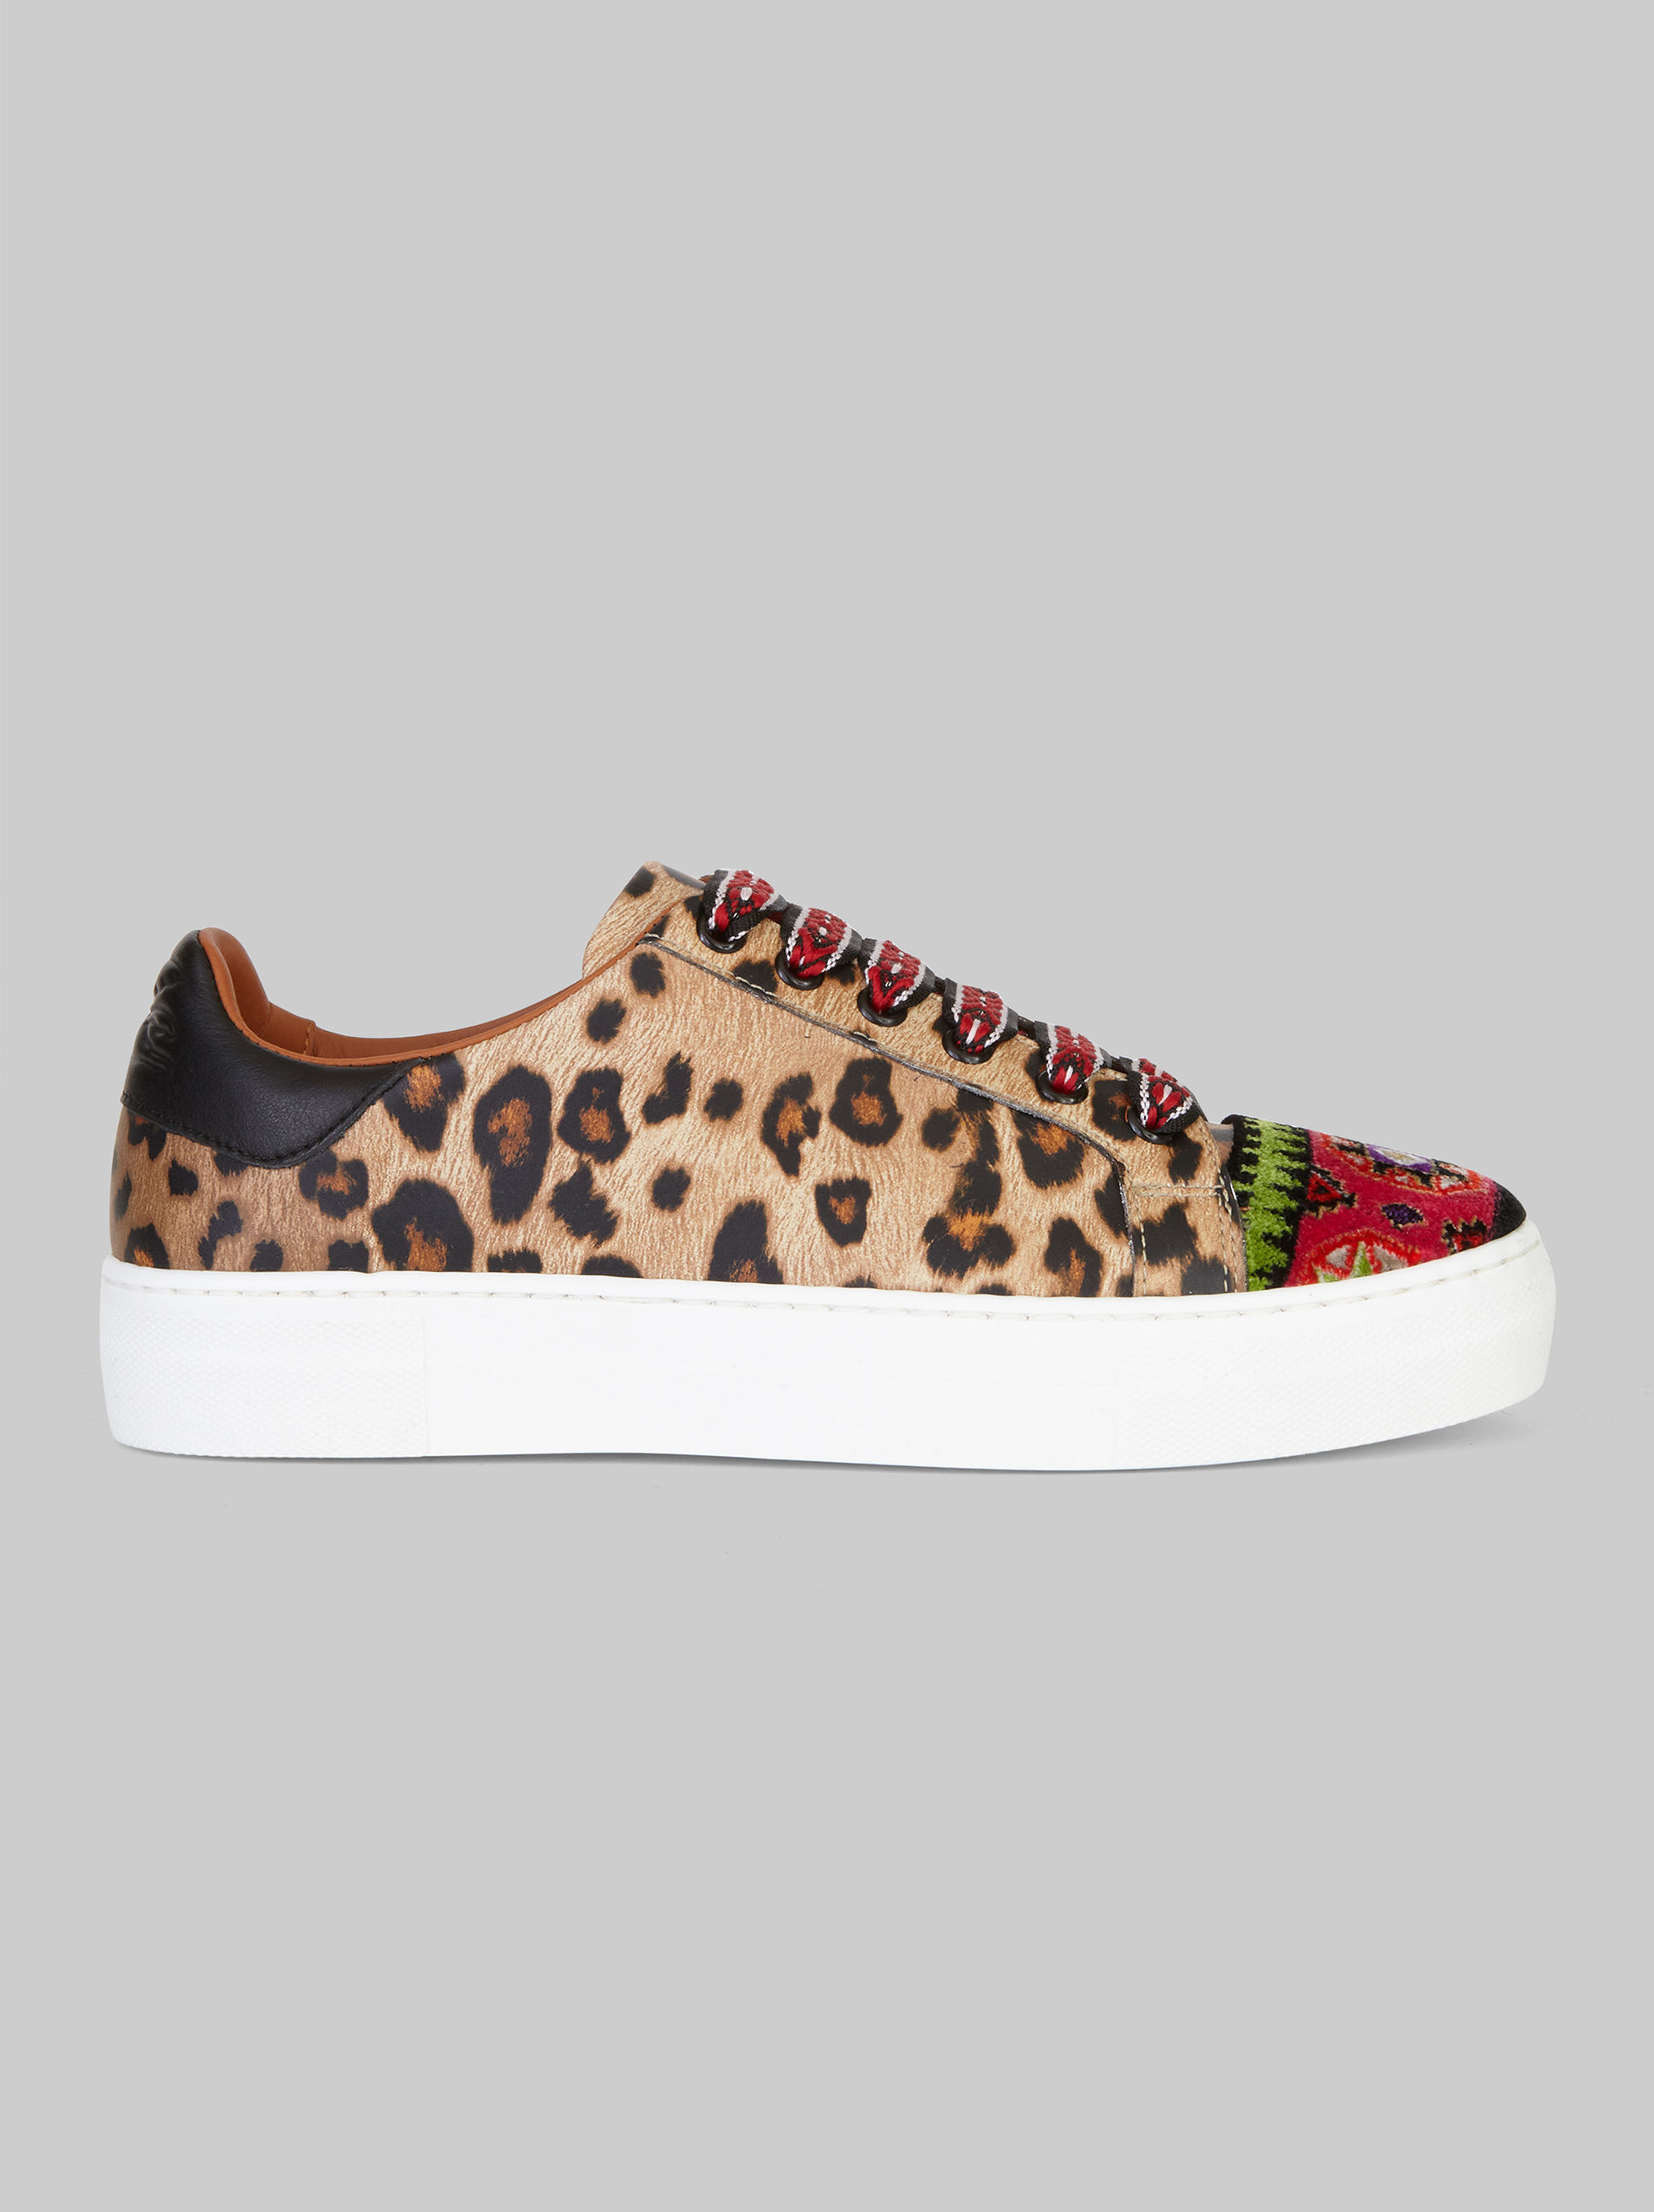 ANIMAL-PRINT SNEAKERS WITH EMBROIDERY